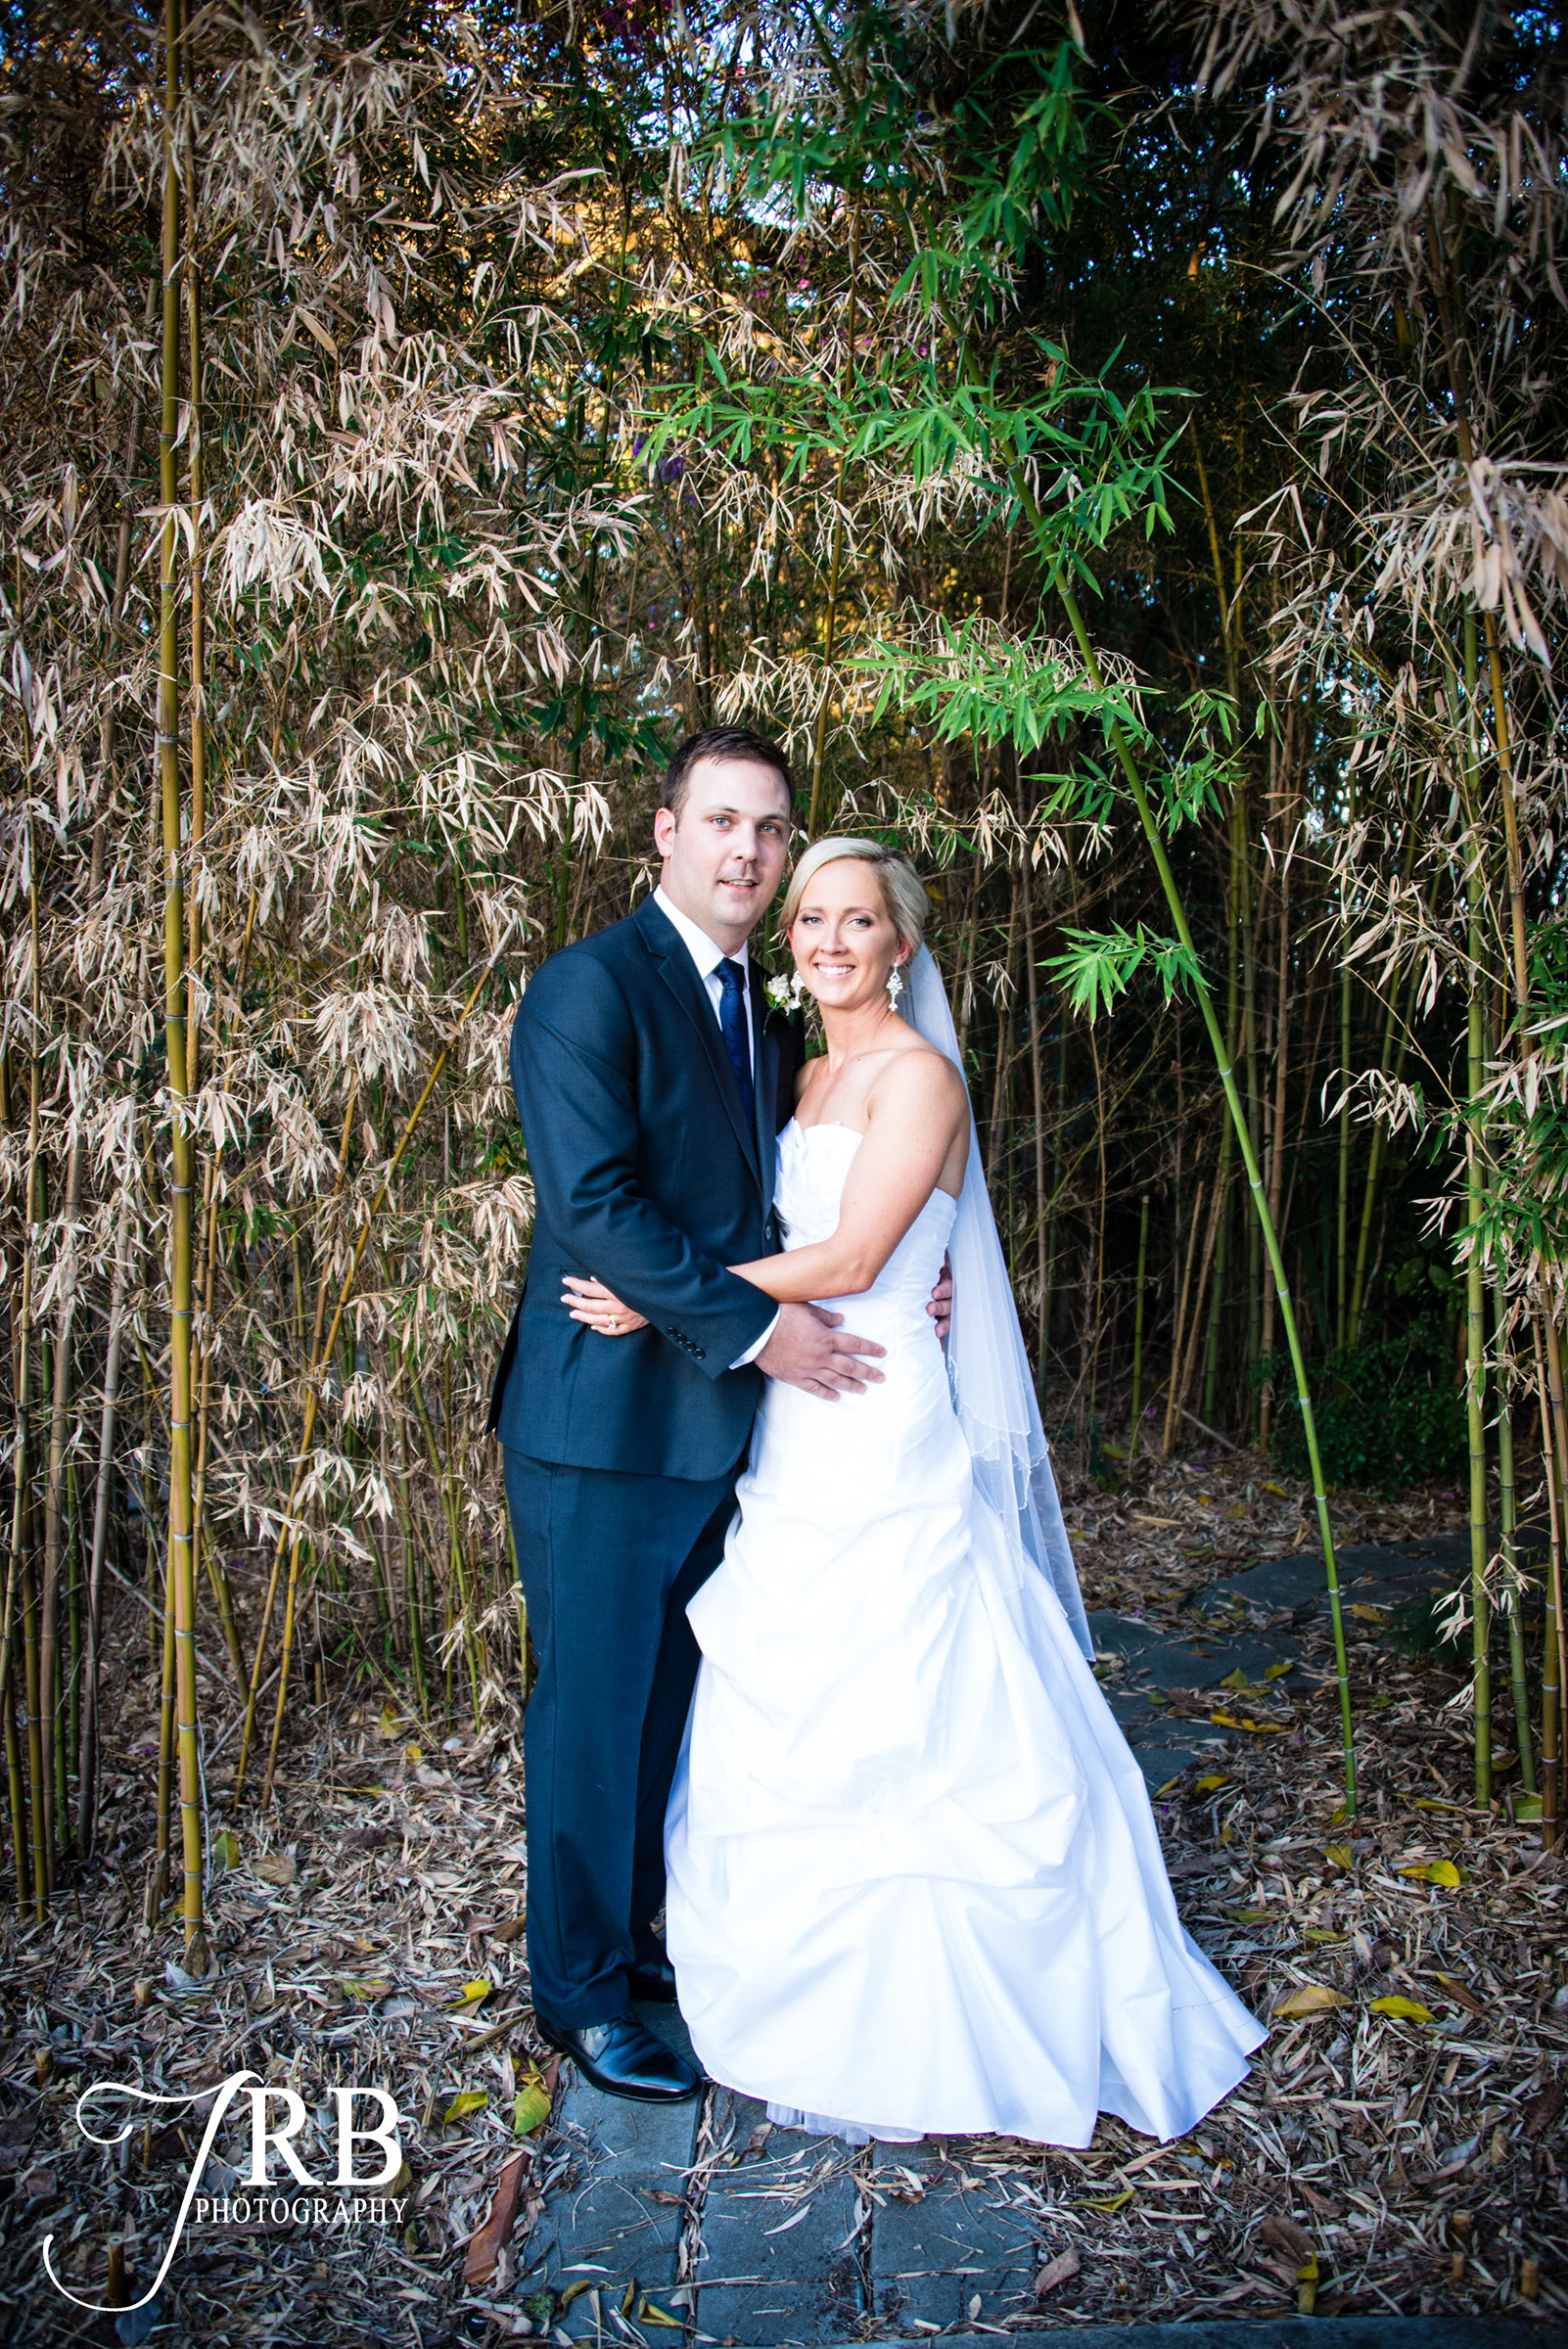 Sally & Andrew's Perfect Day